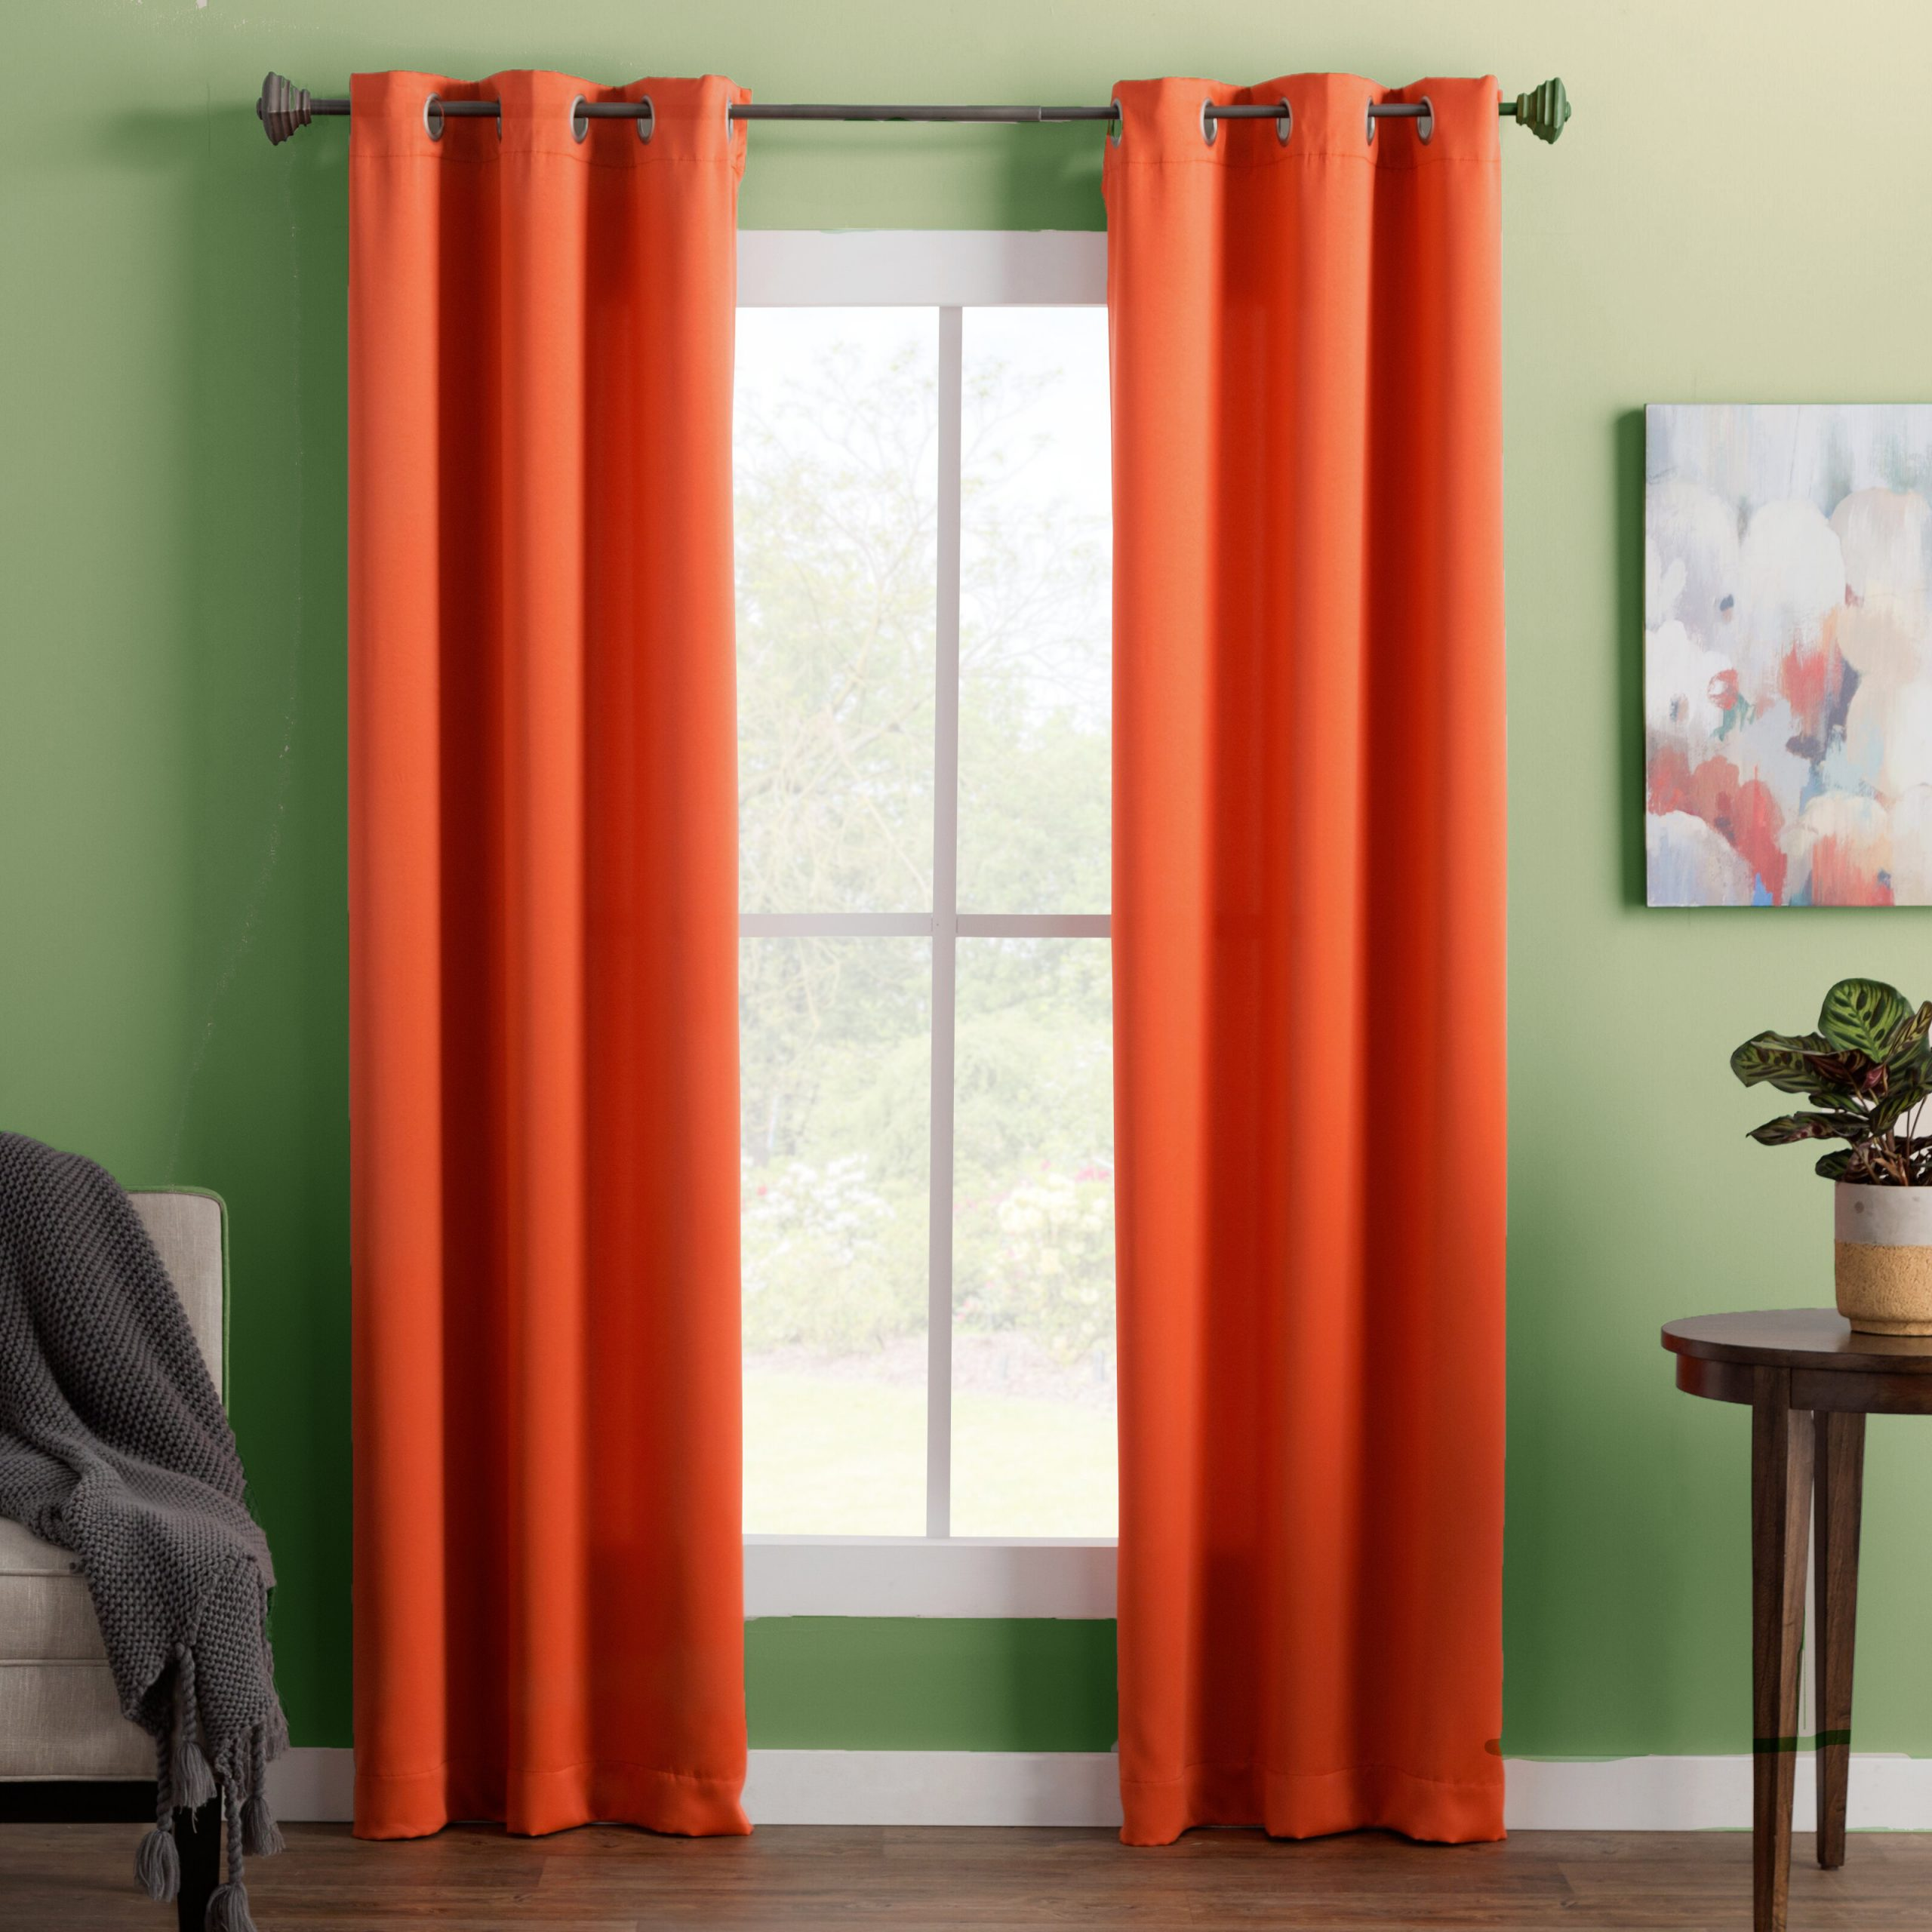 Tangerine Curtains Pop Beautifully Against Green Walls